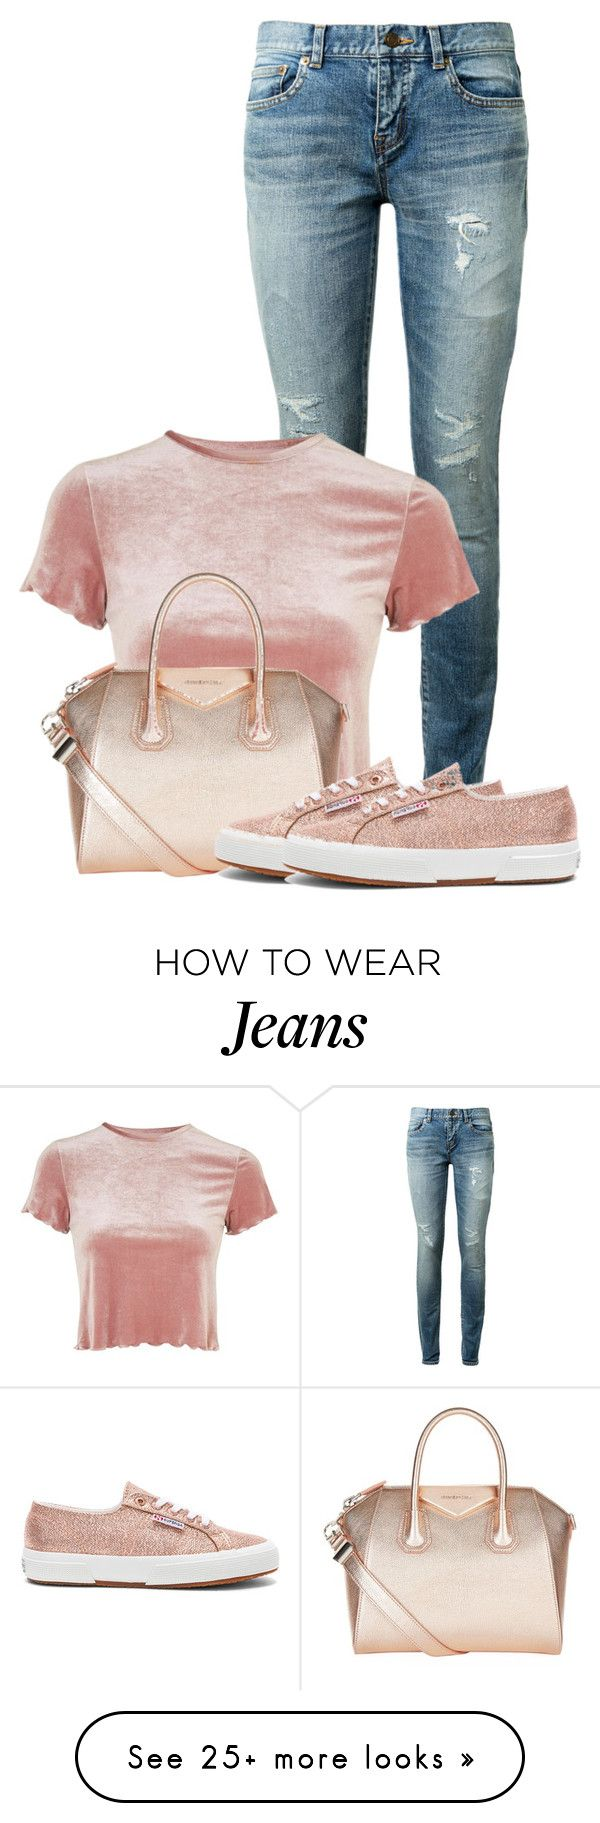 """Pastel look"" by sally92 on Polyvore featuring Yves Saint Laurent, Topshop, Givenchy, Superga and pastels"